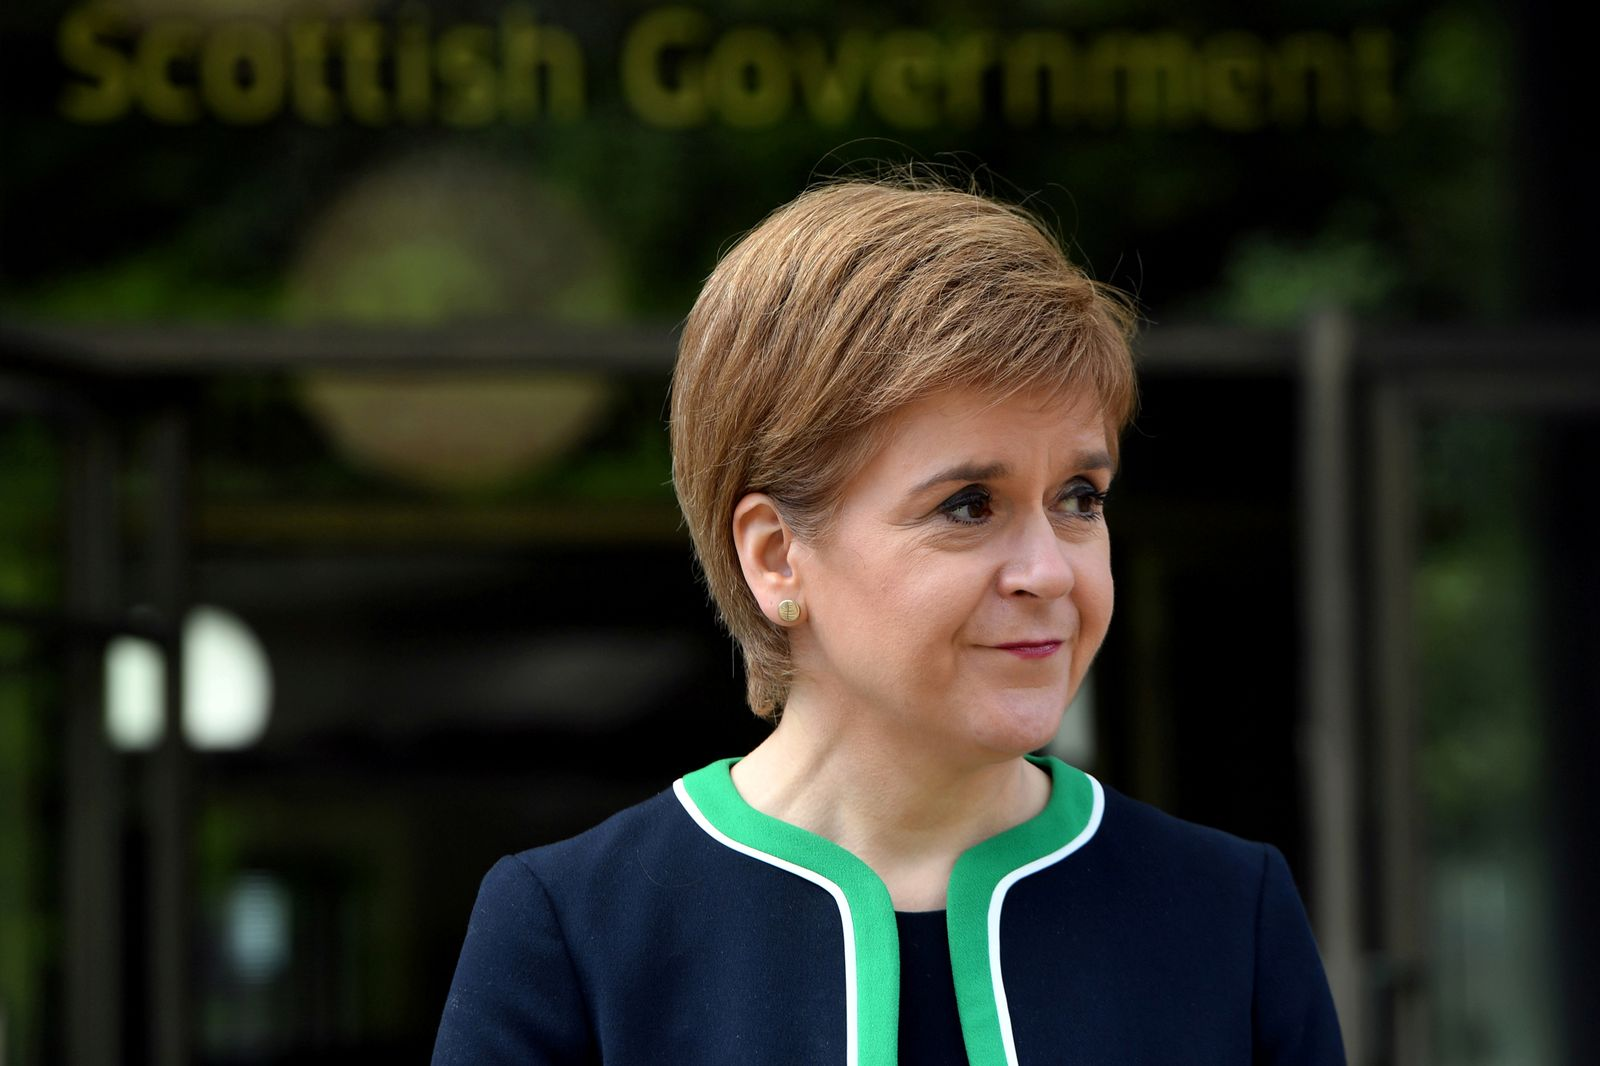 FILE PHOTO: Scotland's First Minister Nicola Sturgeon attends the 75th anniversary of VE Day in Edinburgh